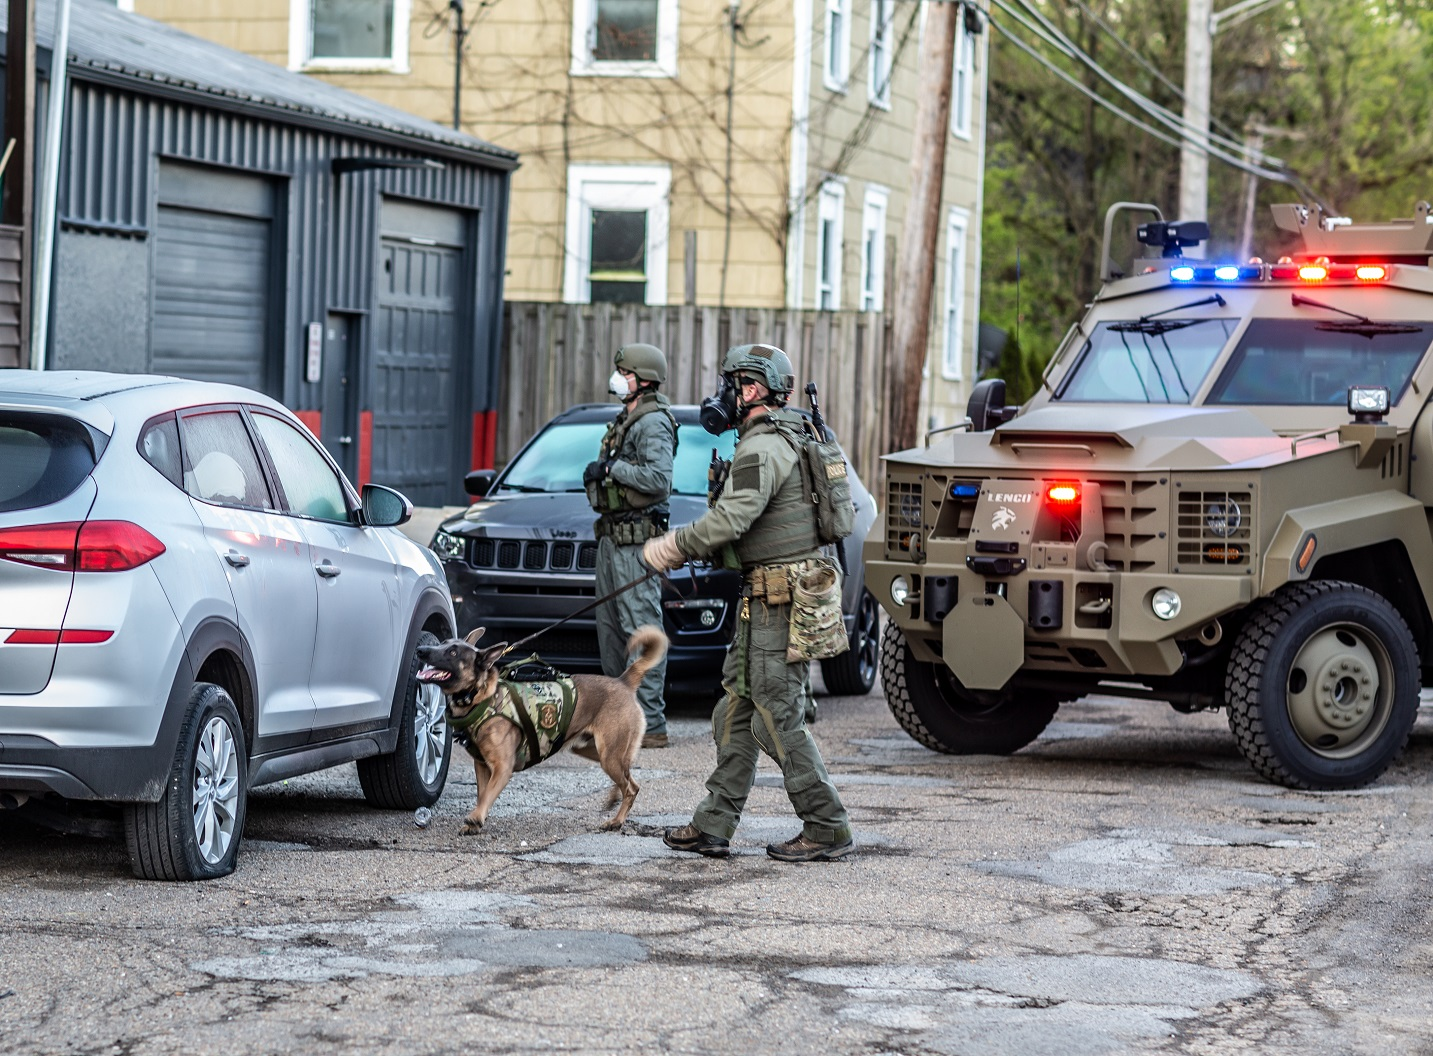 An ATF Special Response Team and canine handler during a warrant service operation.